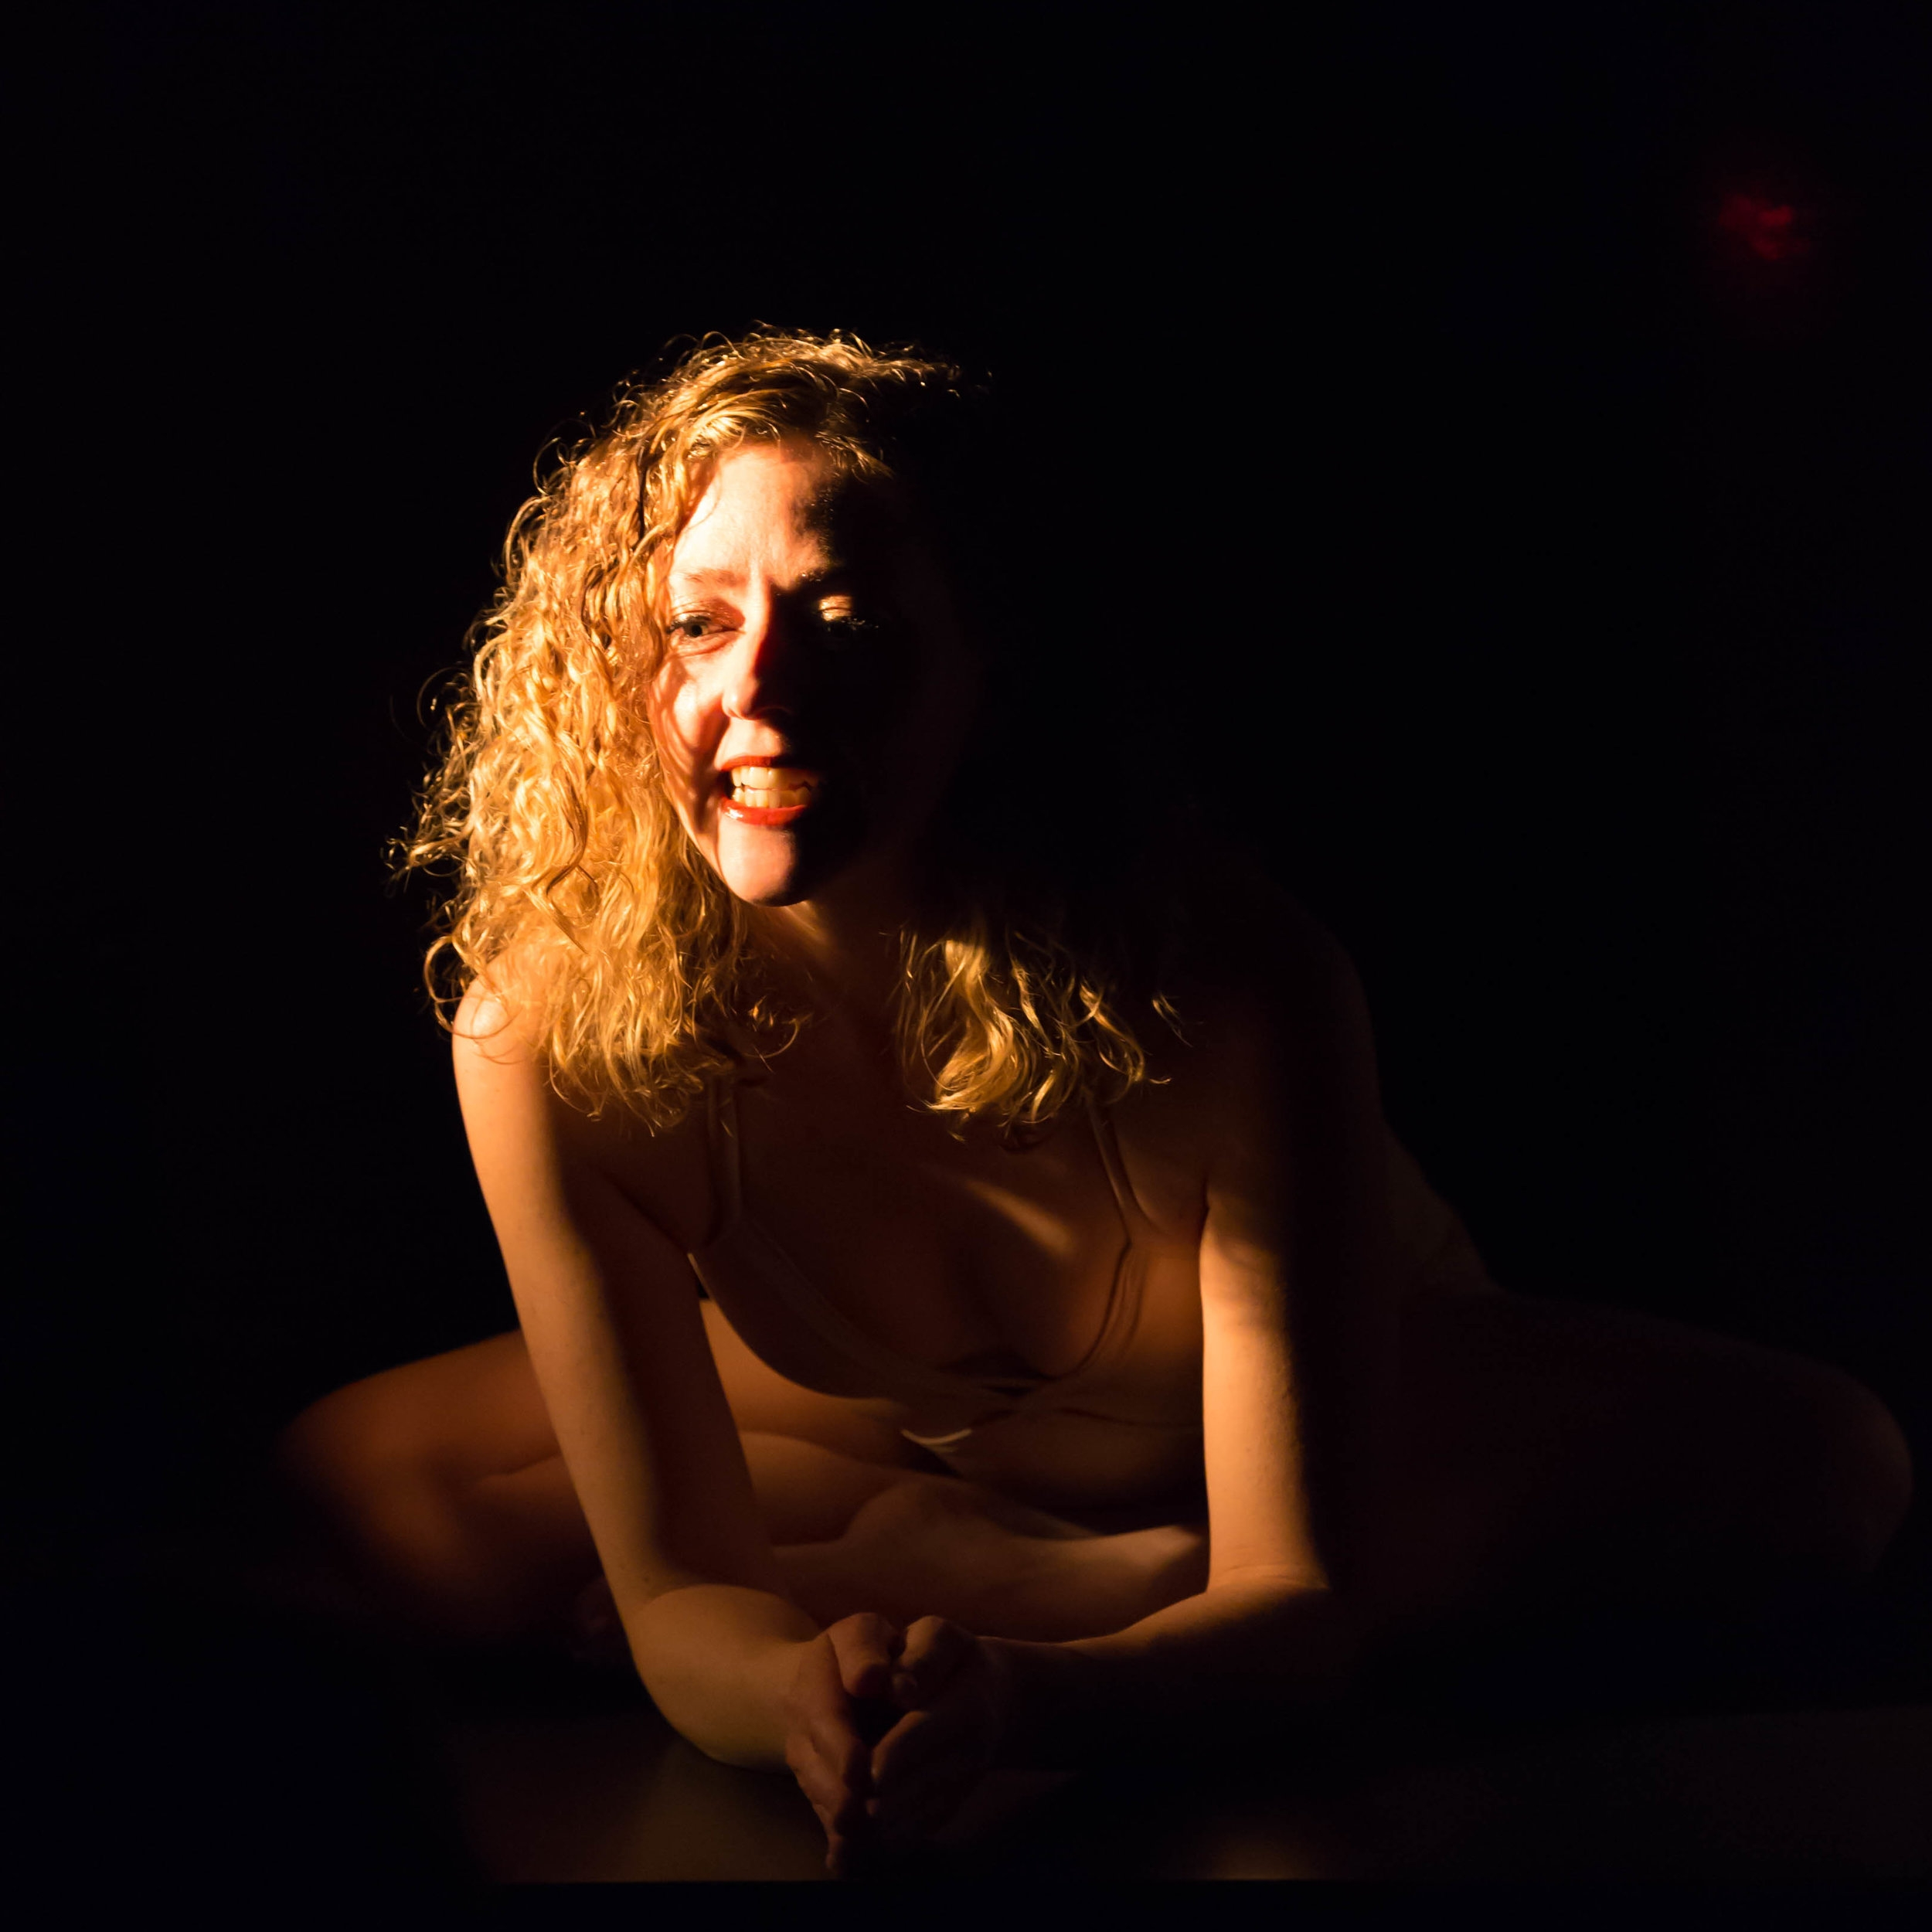 Quotes fromFORBIDDEN SUNSHINE - If you have an aversion to sexuality being expressed or are very religious you should probably definitely NOT come to this show.